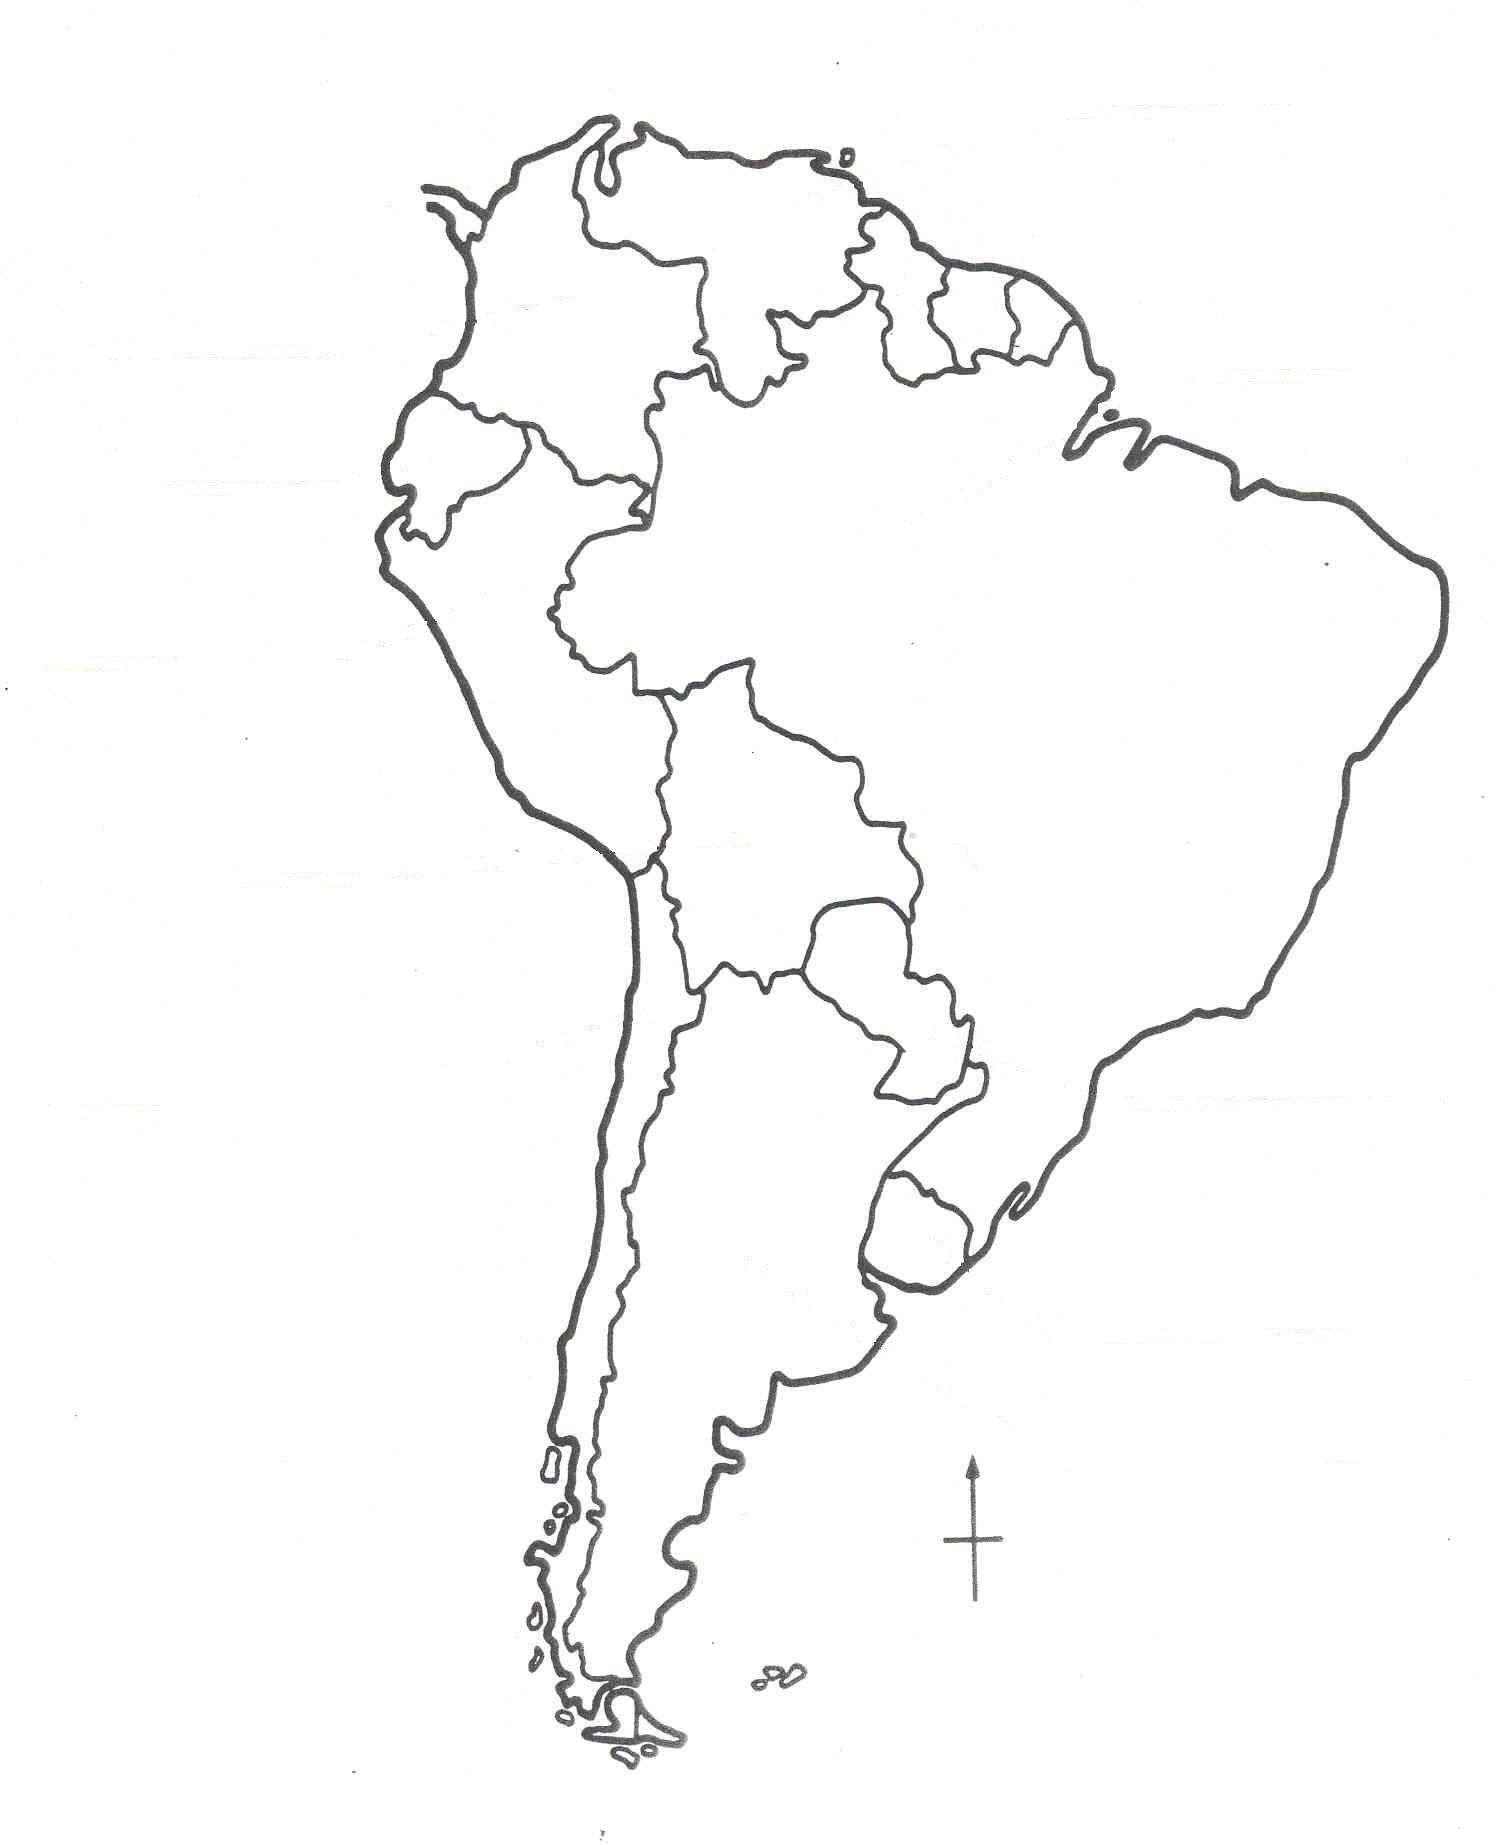 Blank South America Map High Quality Google Search South